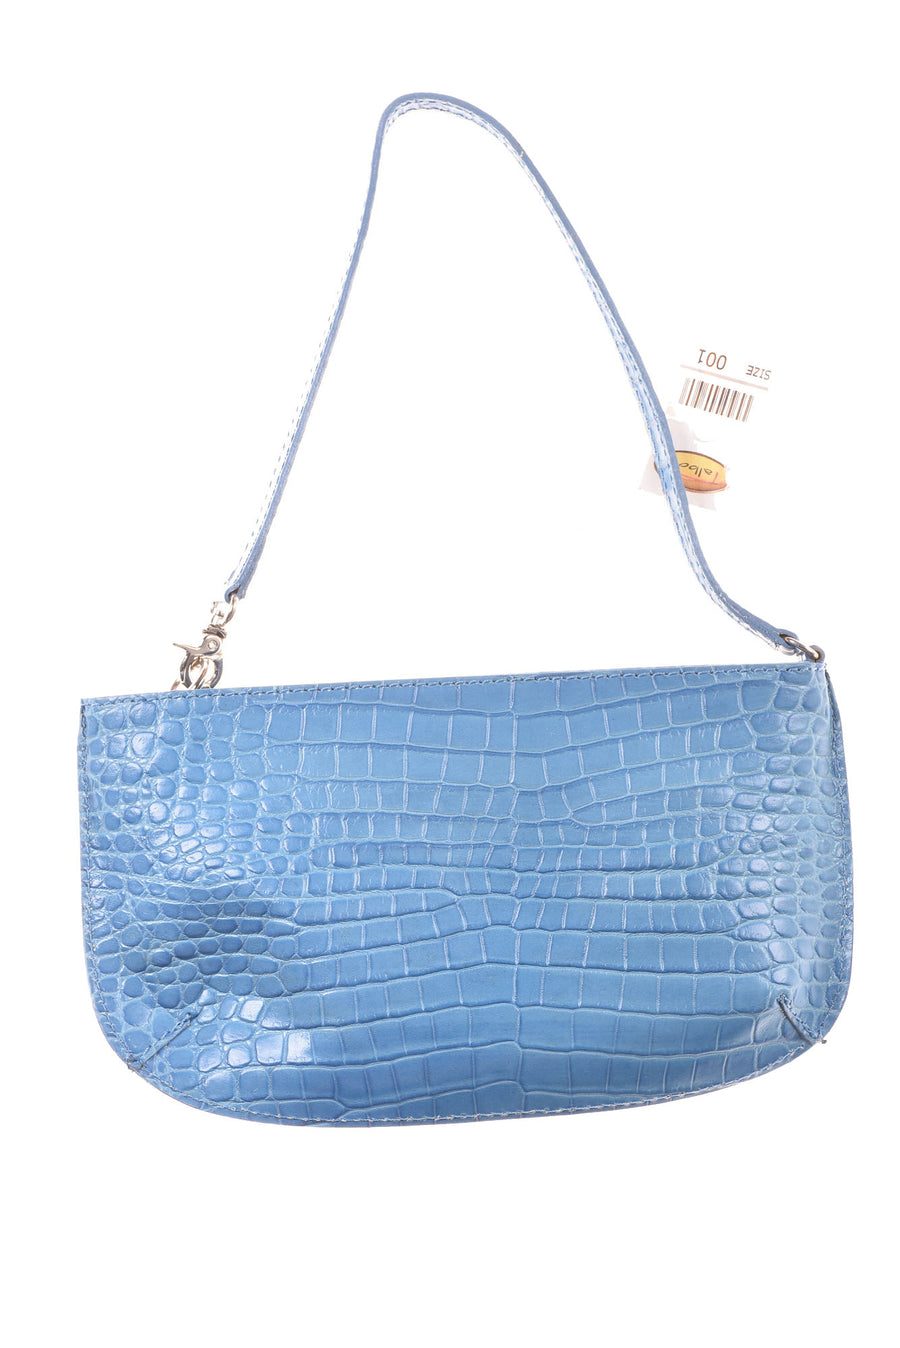 NEW Talbots Women's Handbag N/A Blue